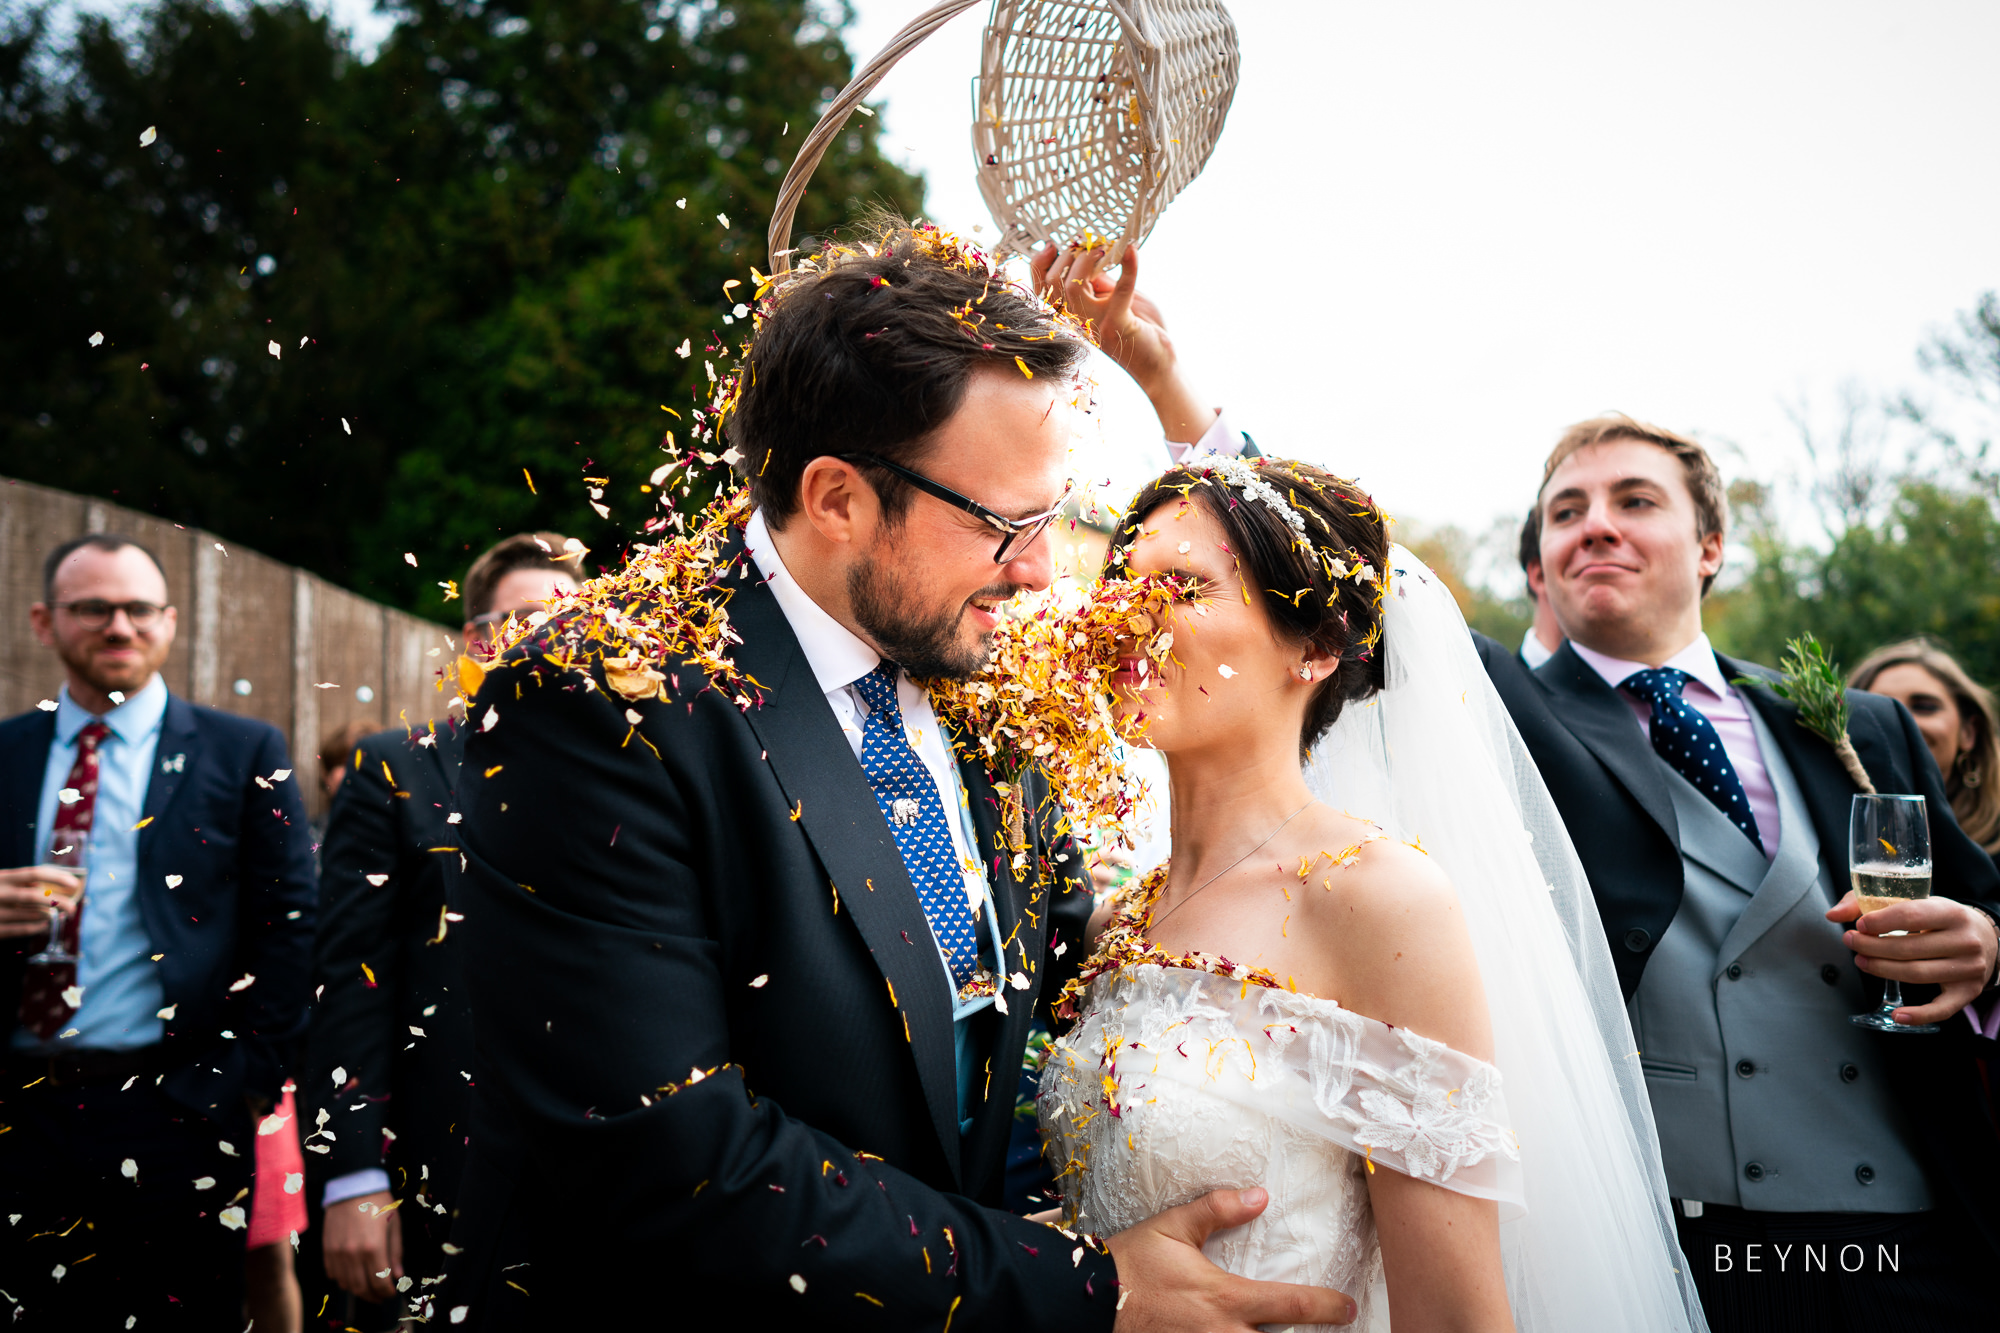 Best Man dumps confetti over the happy couple